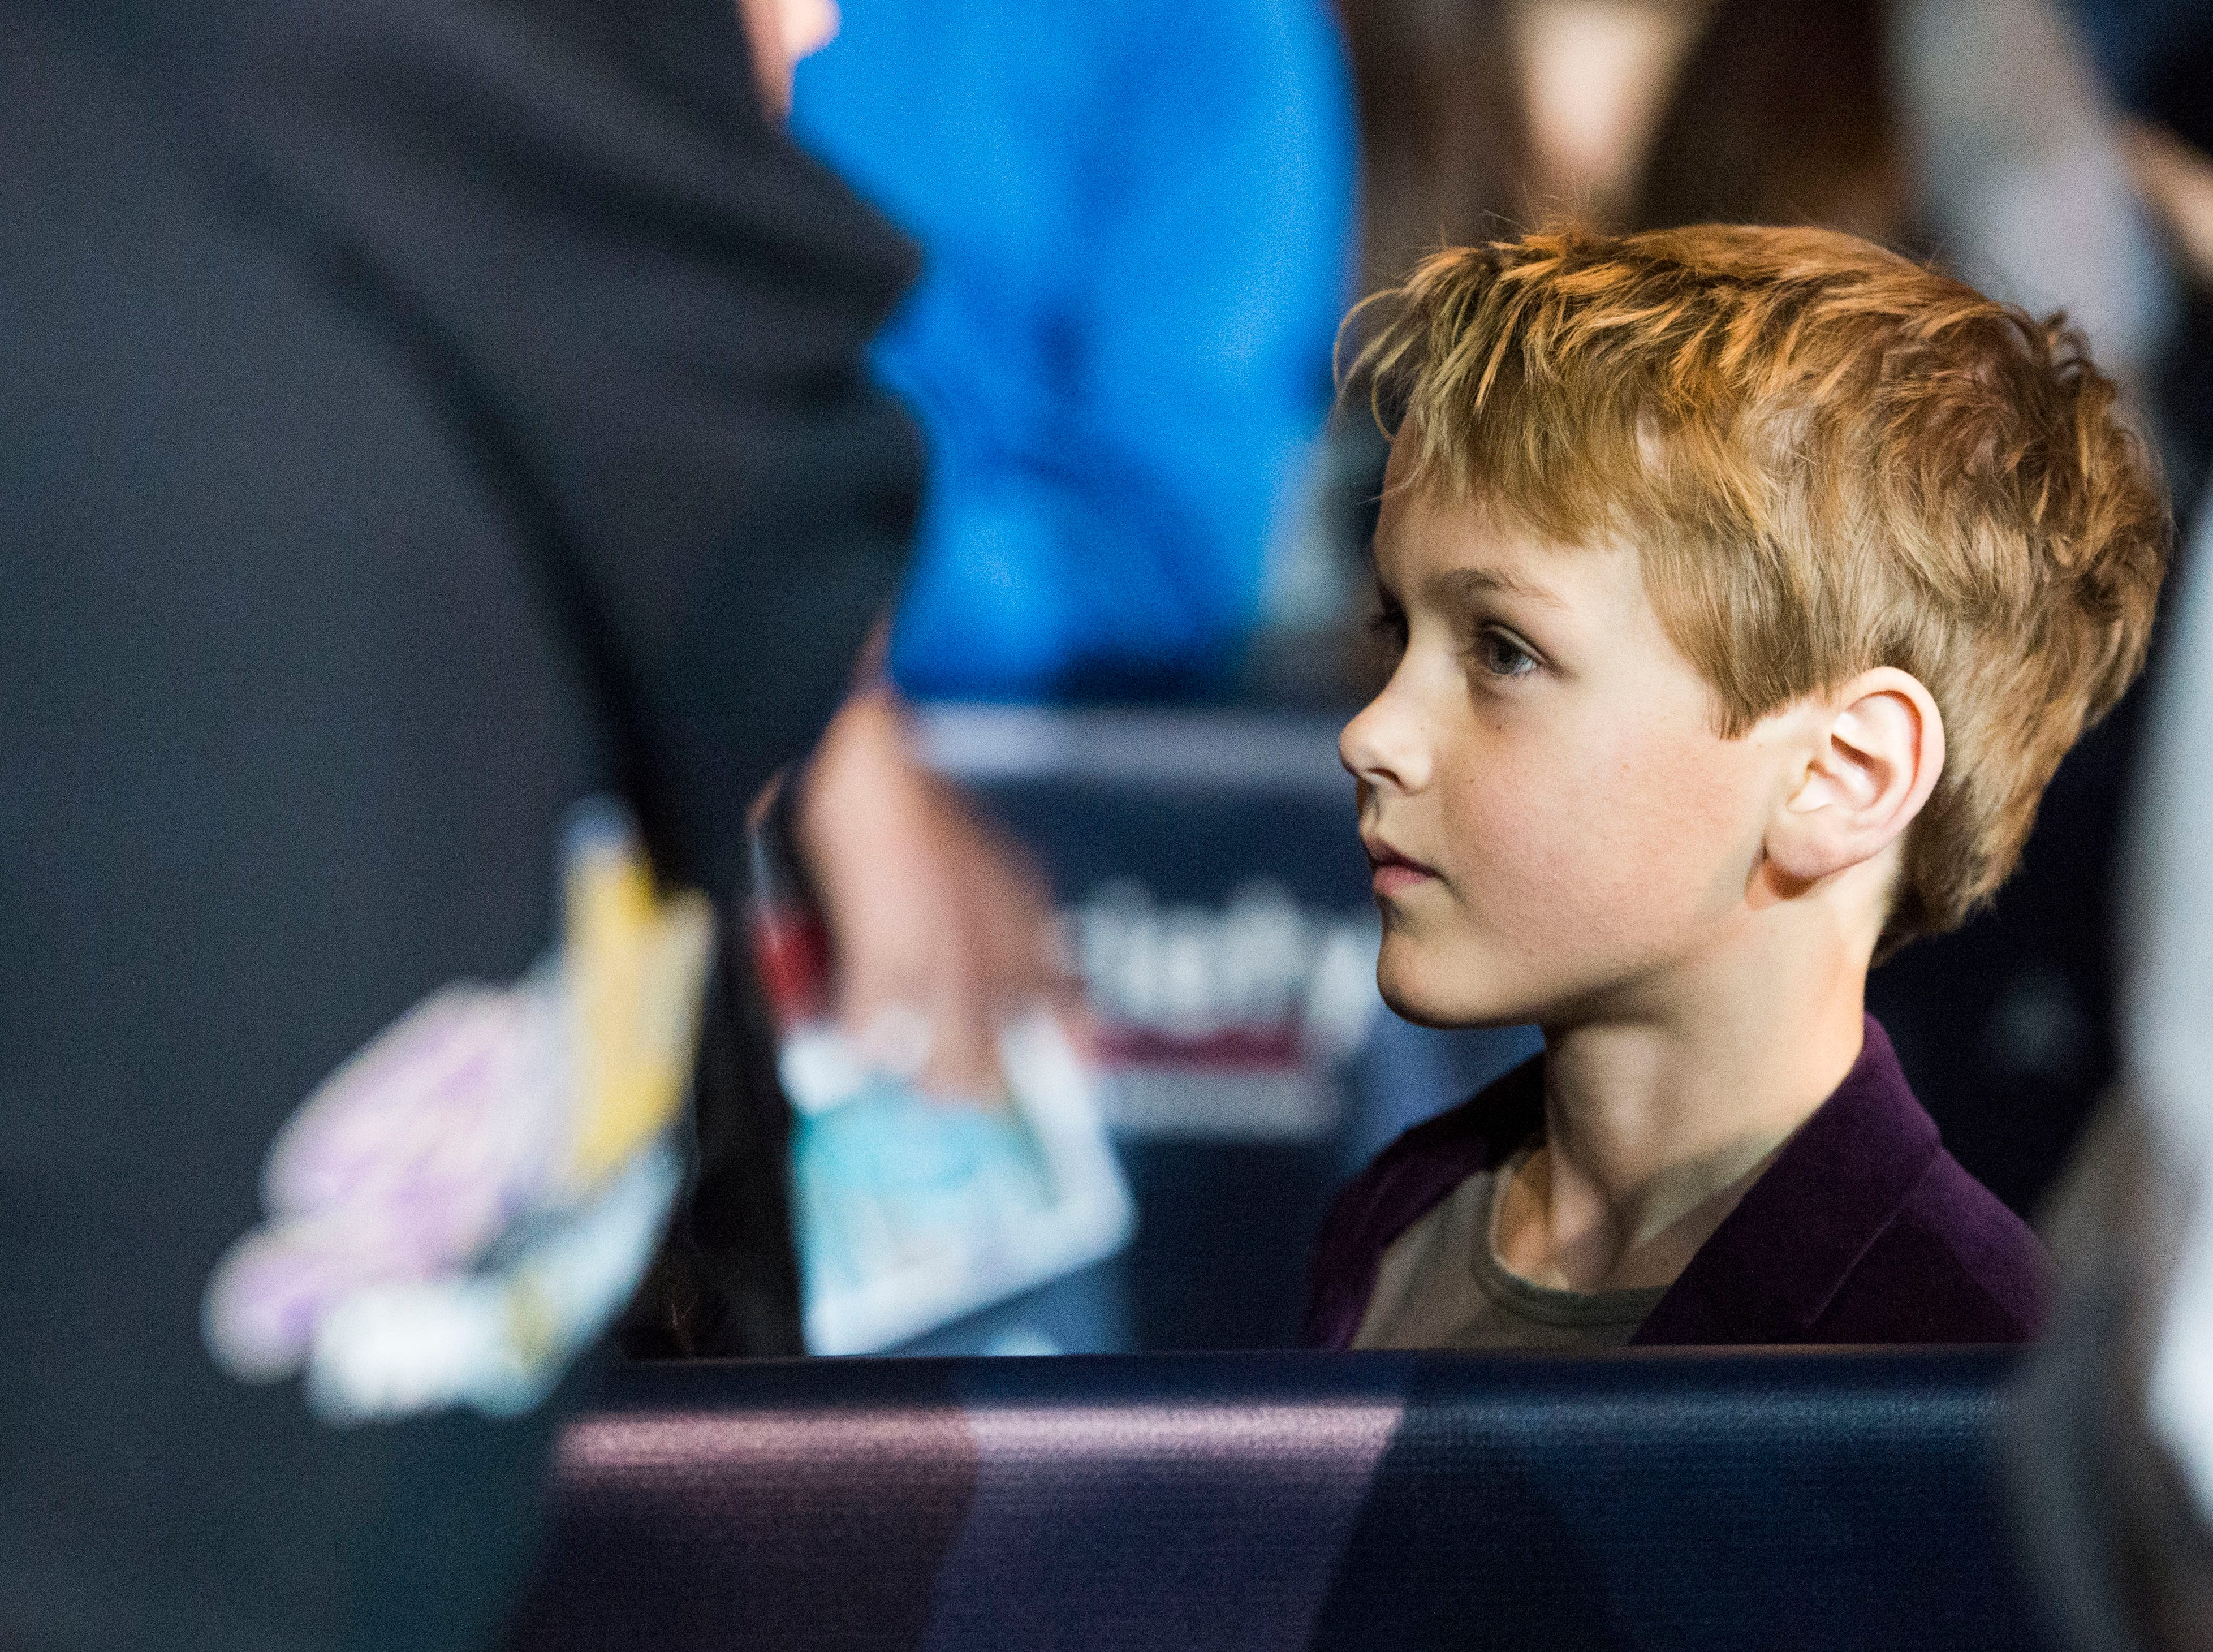 Kasian Wilson, Patrick Wilson's son, watches his father greet fans at Regal's annual red carpet premiere for Variety at Regal Pinnacle Stadium 18, Thursday, Dec. 13, 2018.